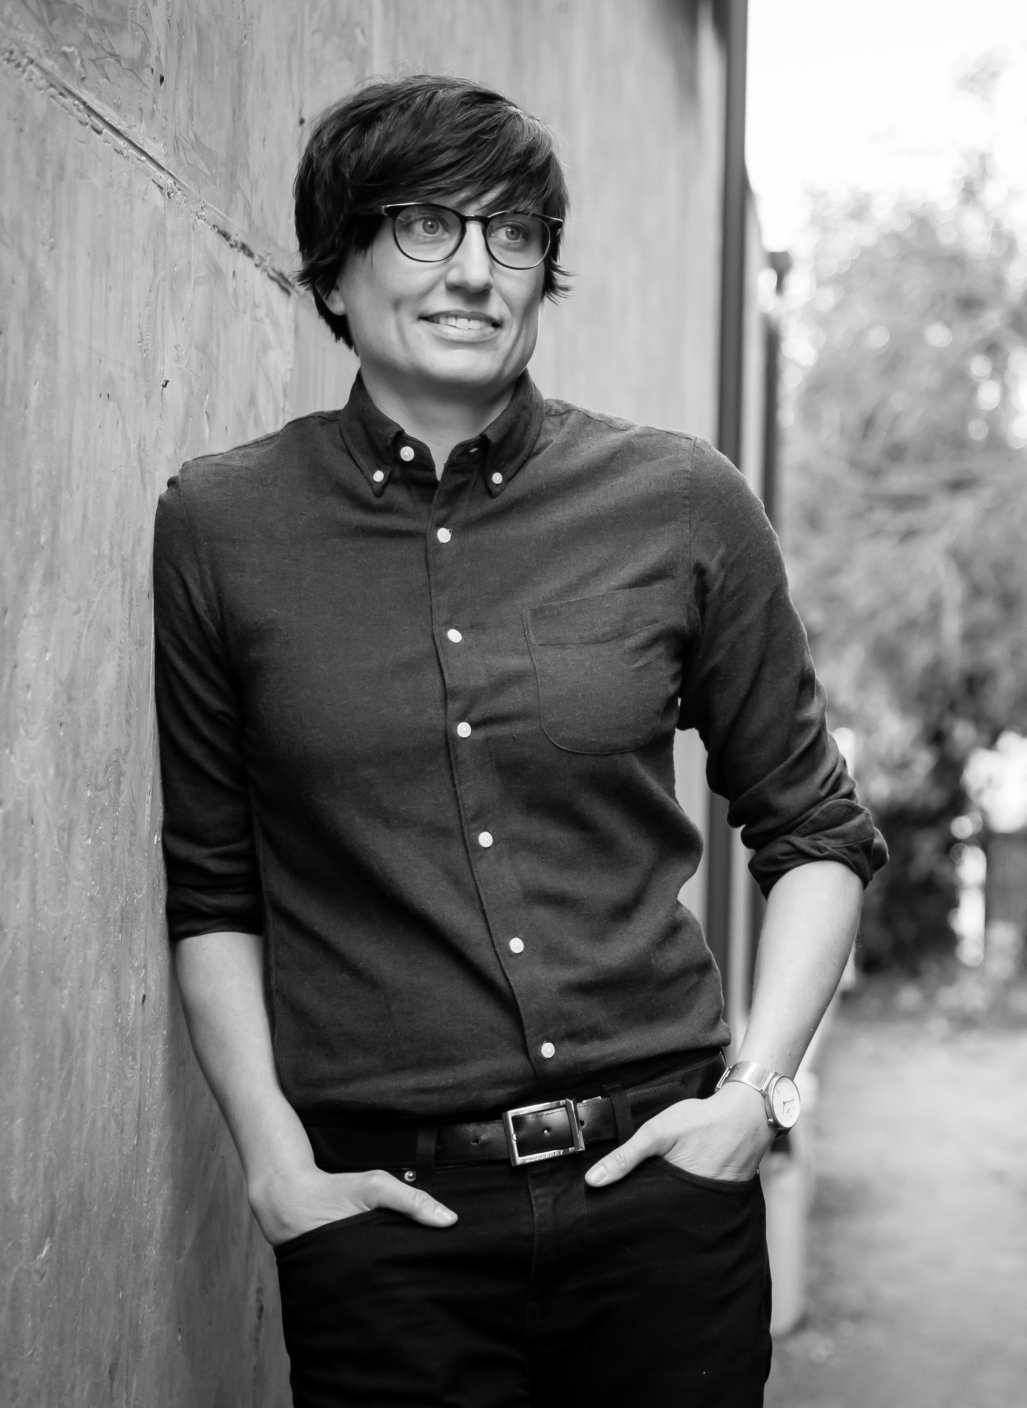 Black-and-white portrait of woman with dark, short hair, bangs, and glasses, in a dark, collared shirt and hands in pockets, leaning against a concrete wall in front of trees.